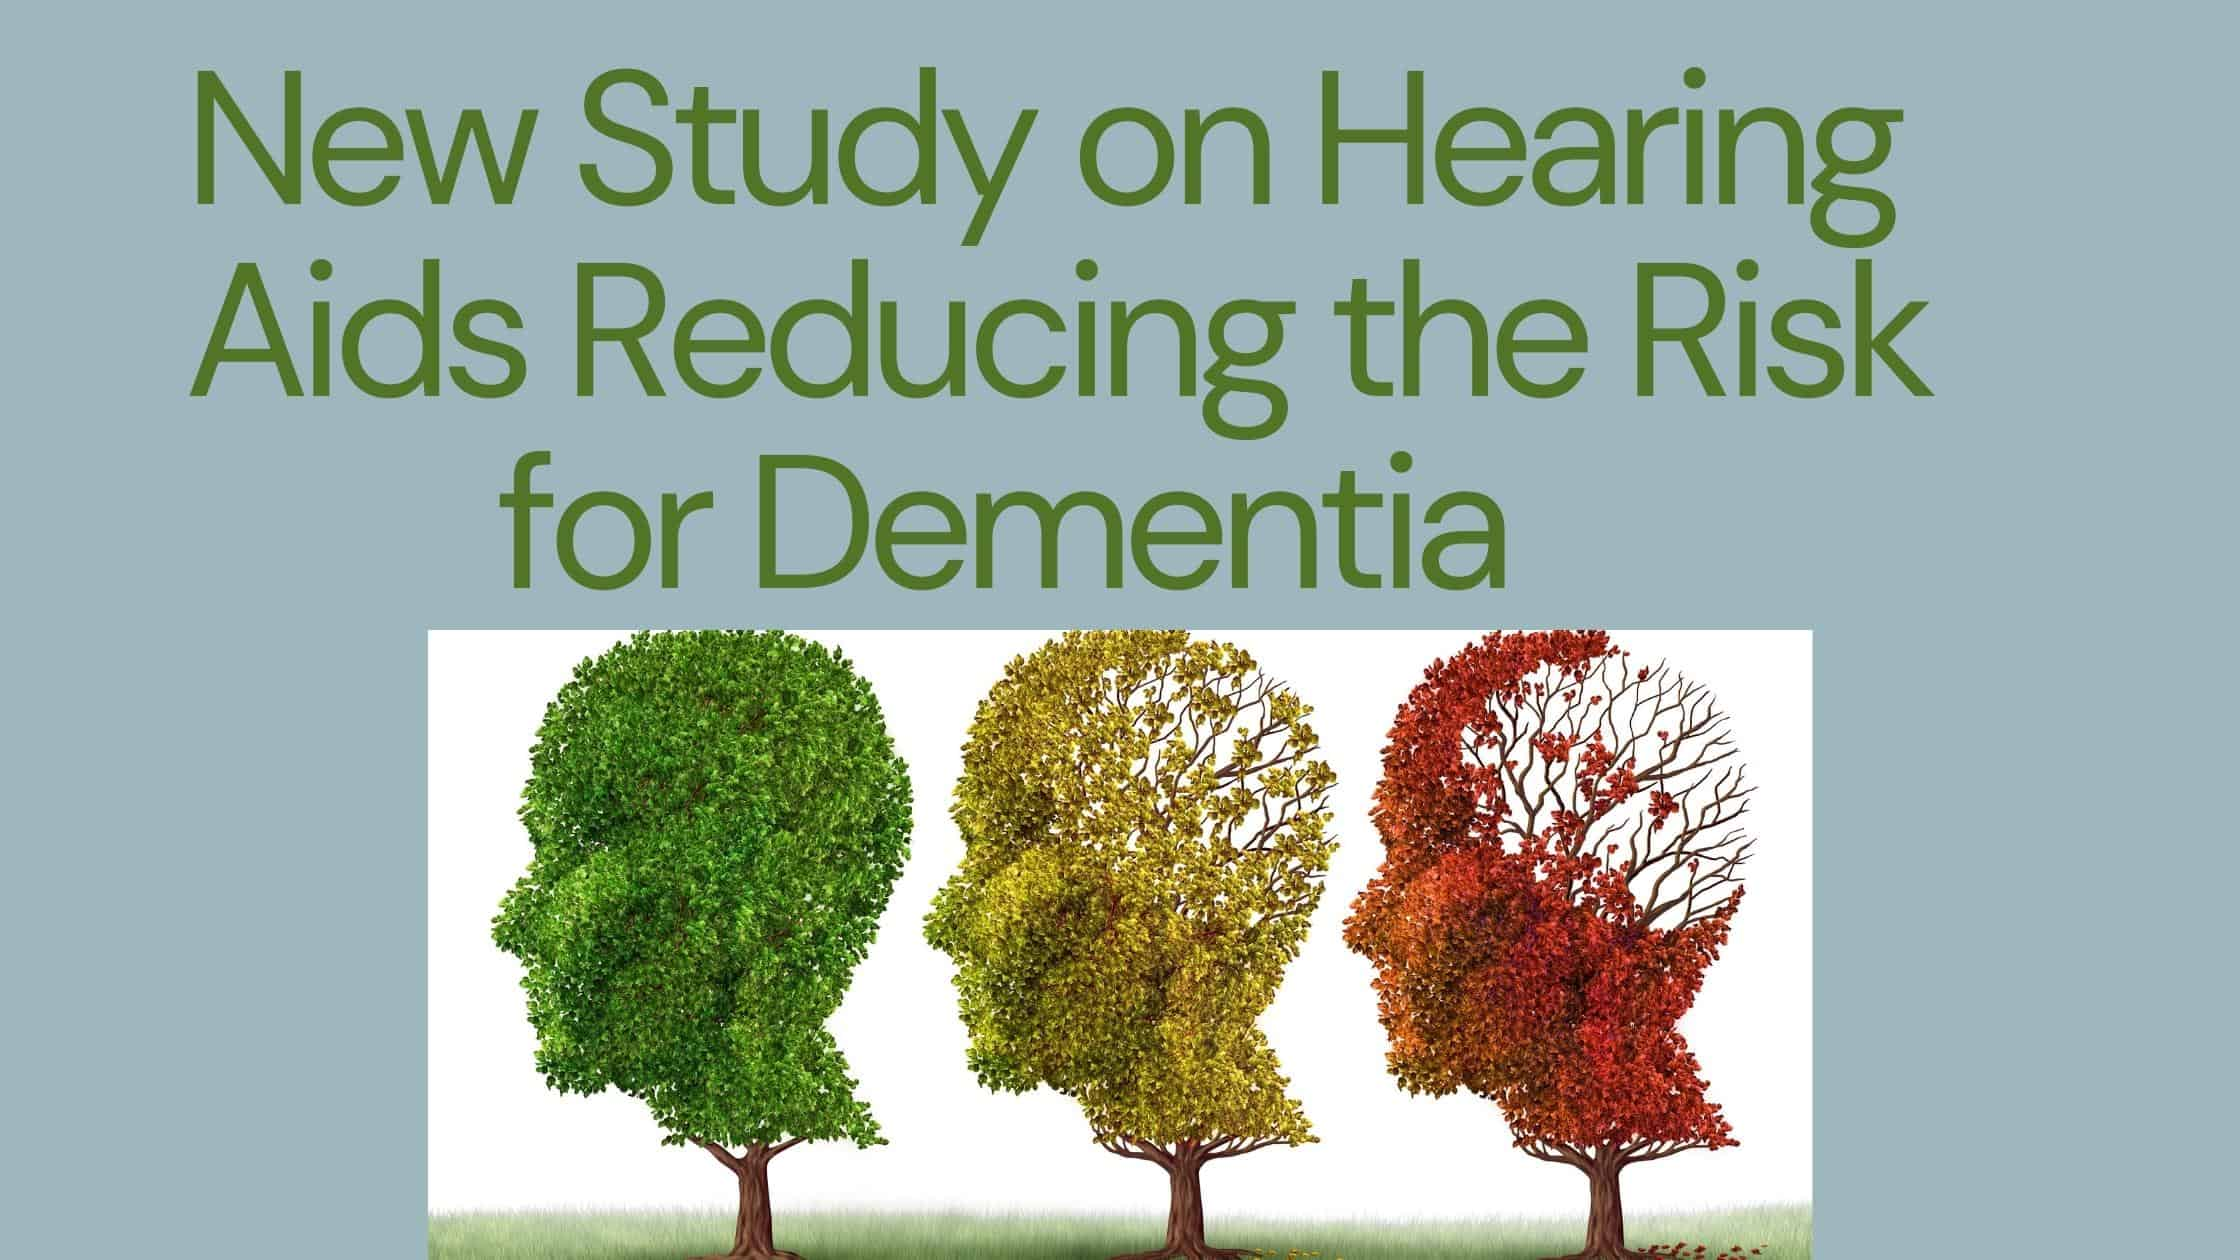 New Study on Hearing Aids Reducing the Risk for Dementia